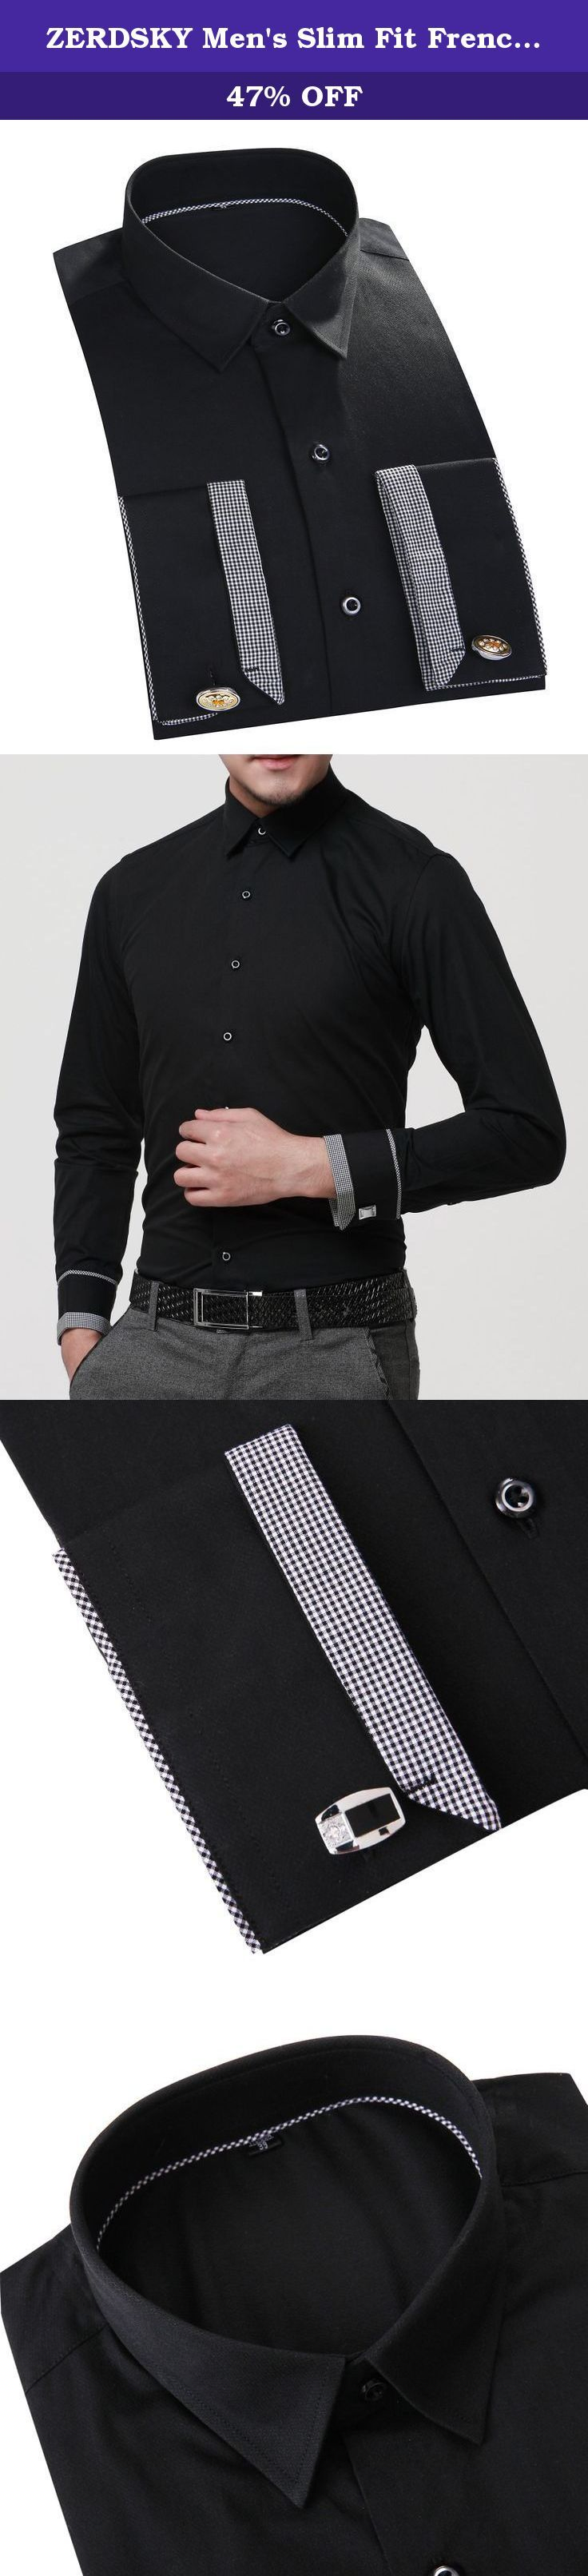 """ZERDSKY Men's Slim Fit French Cuff Dress Shirt(Cufflinks Included) Black 39. With cuff links(random style). Left chest pocket. Slim Fit ,High Quality. Machine or Hand Wash. Please click """"ZERDSKY"""" to see more dress shirt."""